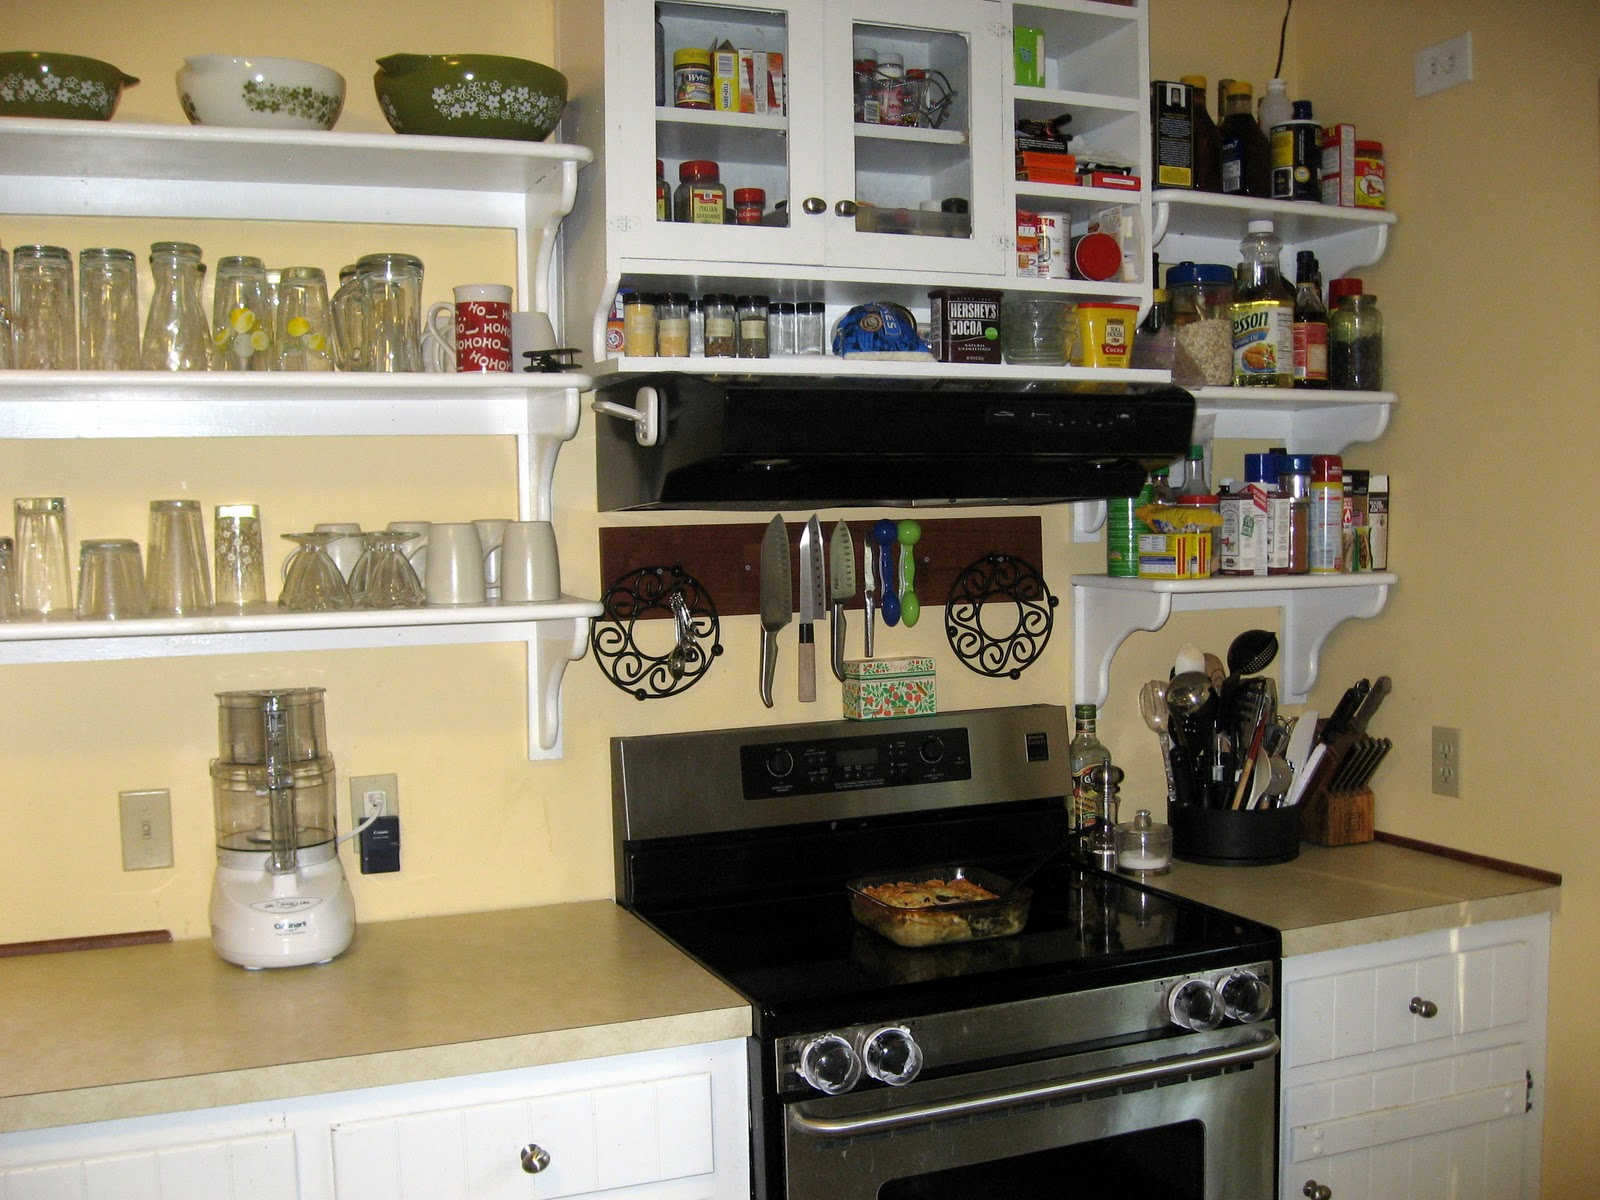 my kitchen the virtuous wife kitchen with shelves instead of cabinets pics kitchens with shelves for decorations